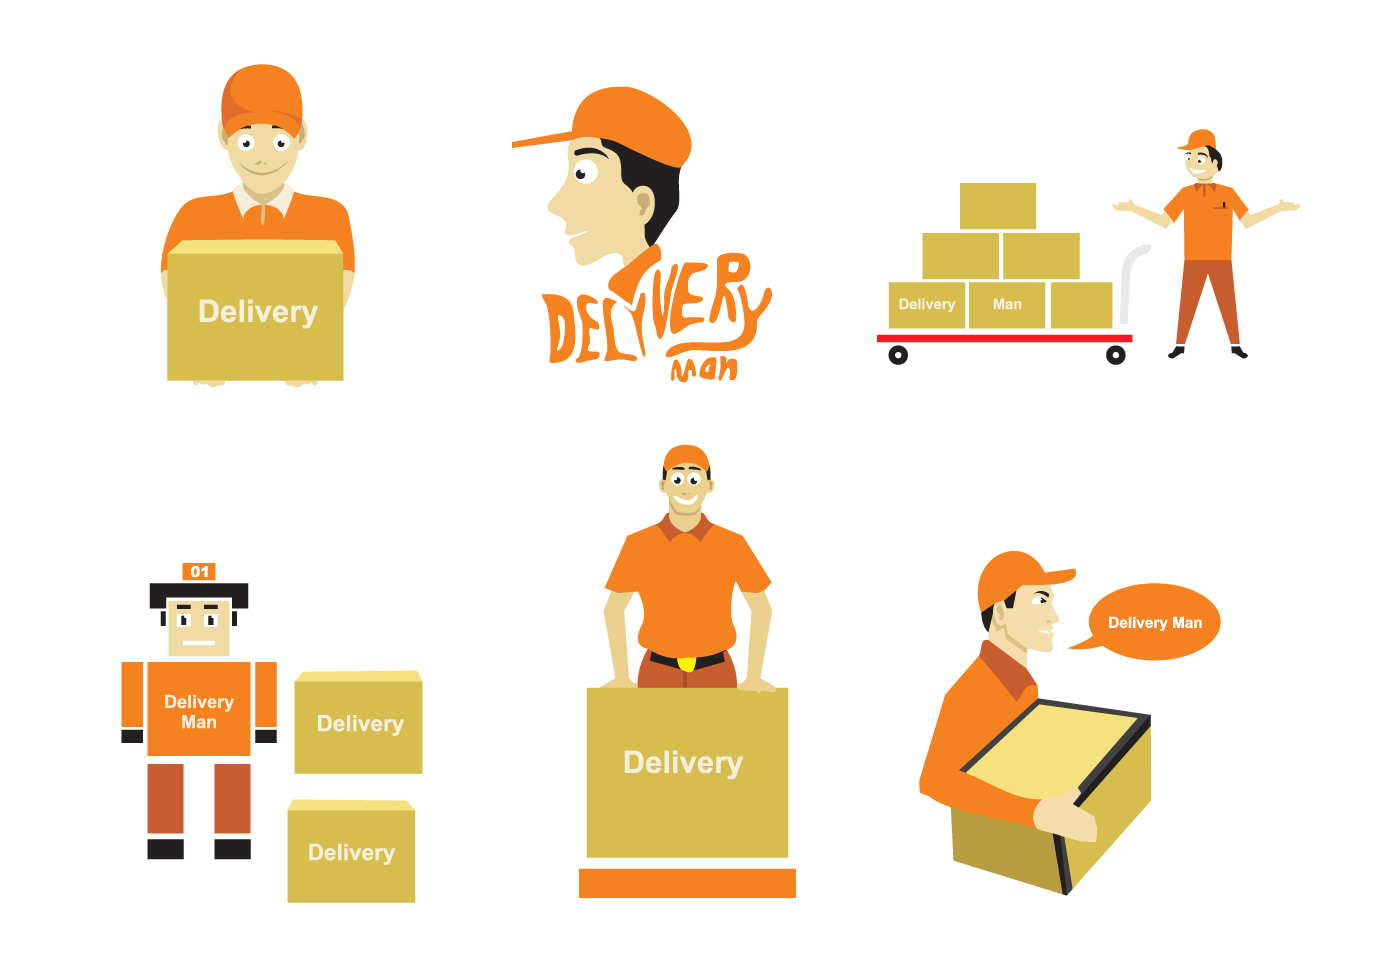 Delivery Man Illustration Download Free Vector Art